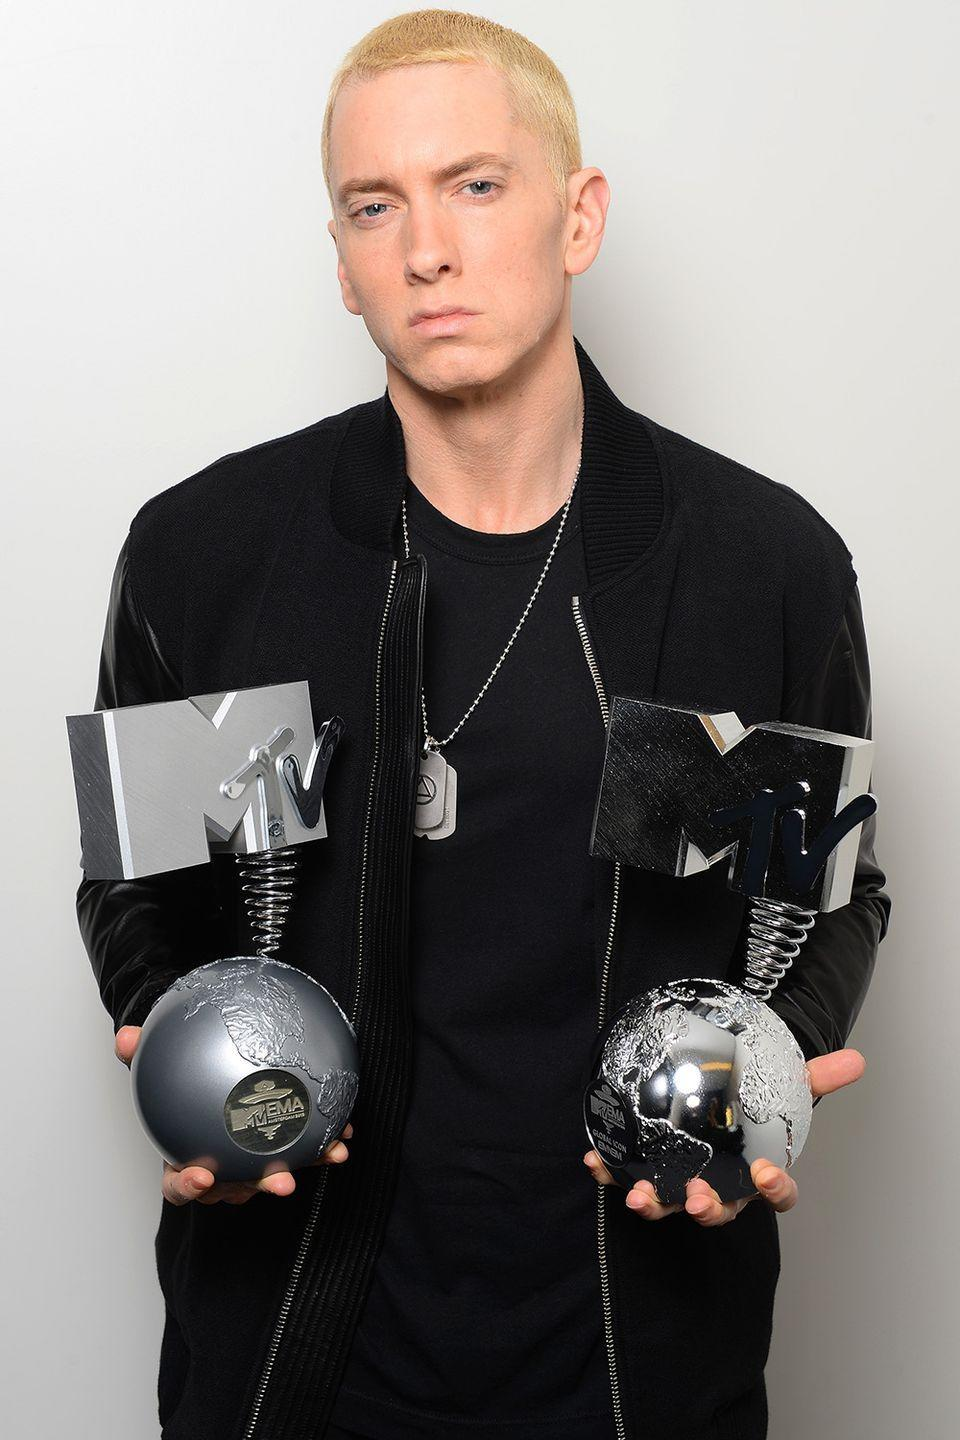 """<p>After the rapper struggled with dangerous addictions to both alcohol and drugs for <a href=""""http://www.mtv.com/news/1610557/eminem-admits-he-almost-died-from-drug-overdose/"""" rel=""""nofollow noopener"""" target=""""_blank"""" data-ylk=""""slk:many years"""" class=""""link rapid-noclick-resp"""">many years</a> throughout his early career, Eminem has returned to music sober.</p>"""